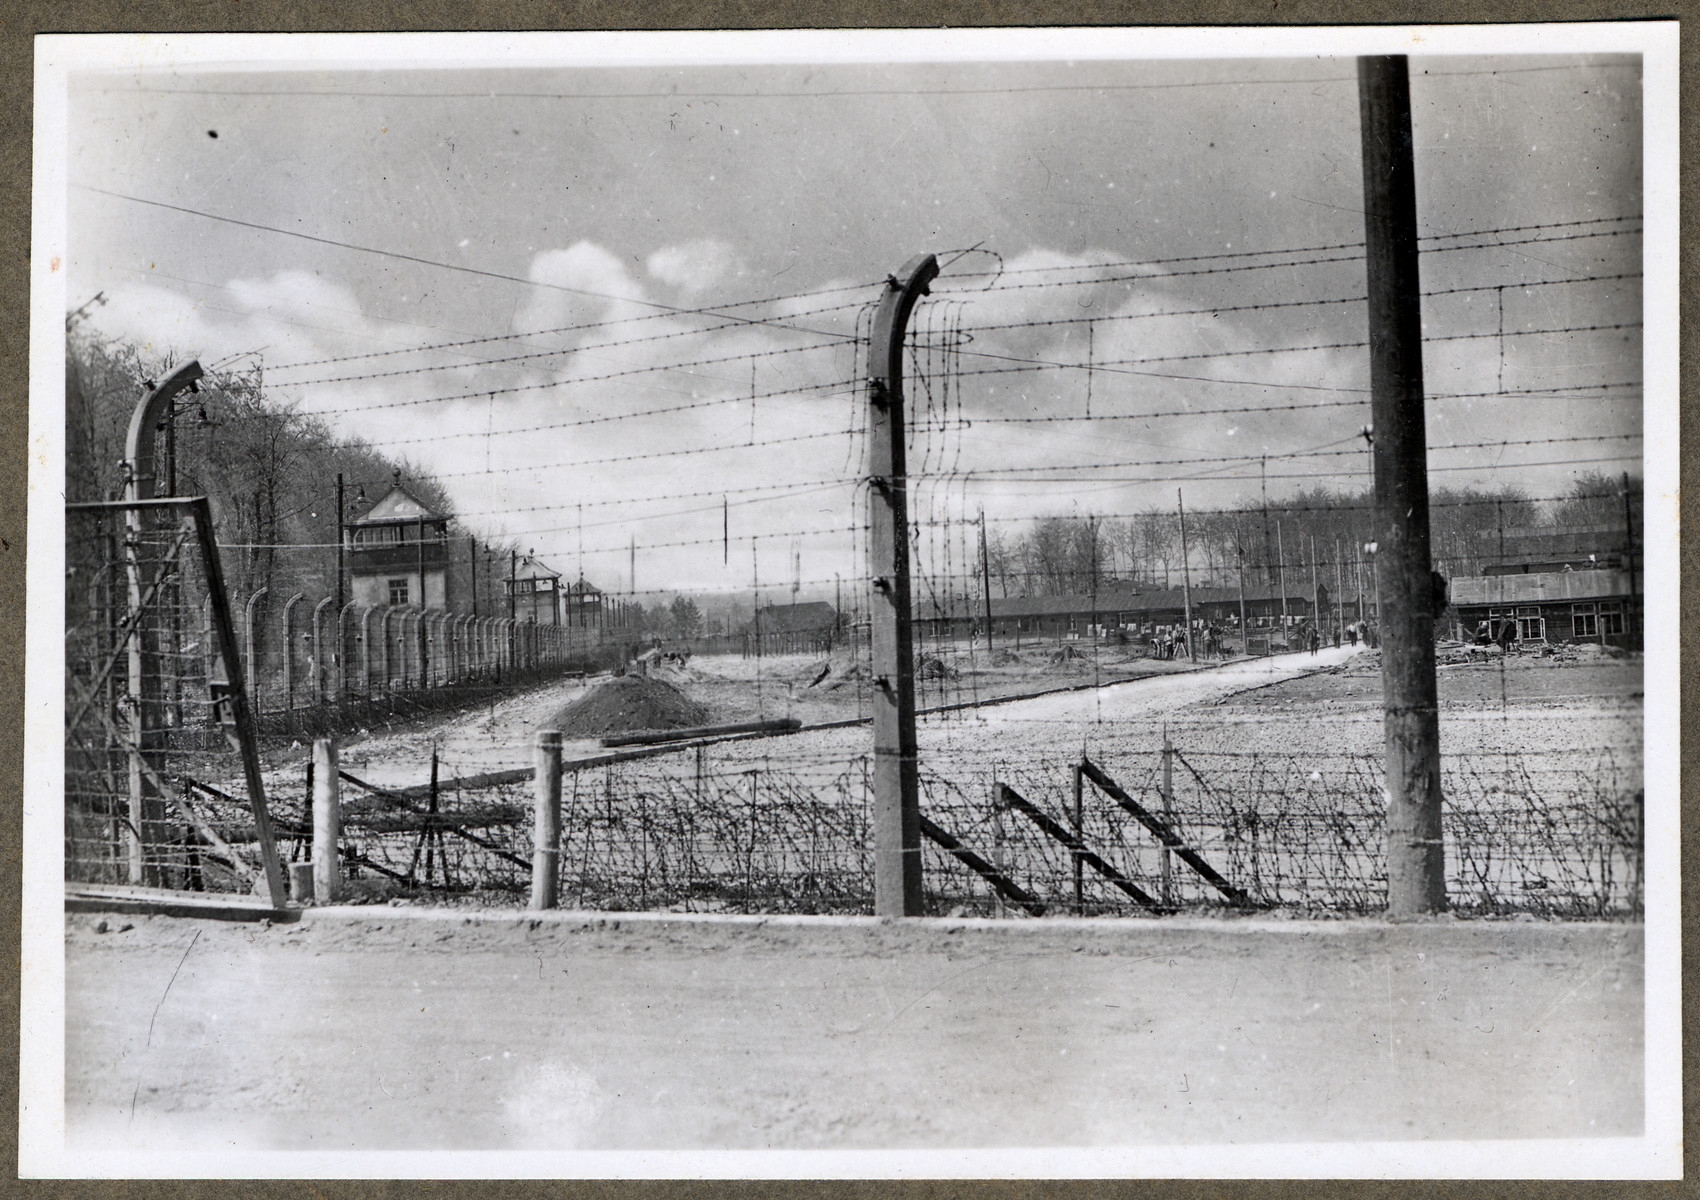 View of a section of the barbed wire fence and row of watch towers that surround the Buchenwald concentration camp.